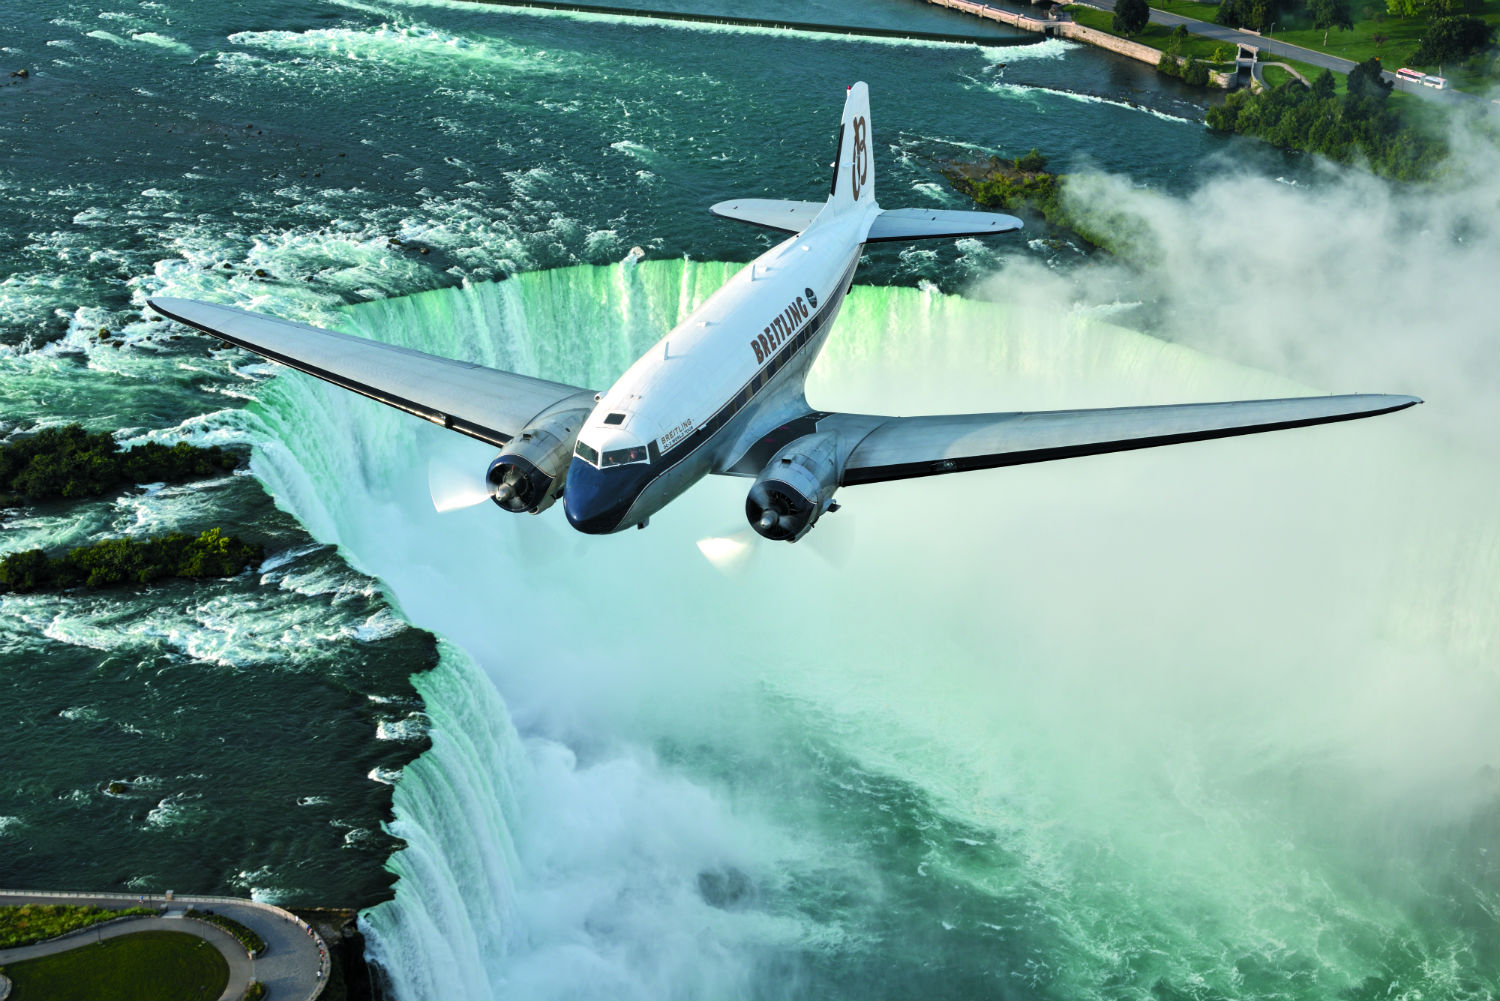 DC-3 flies over waterfall